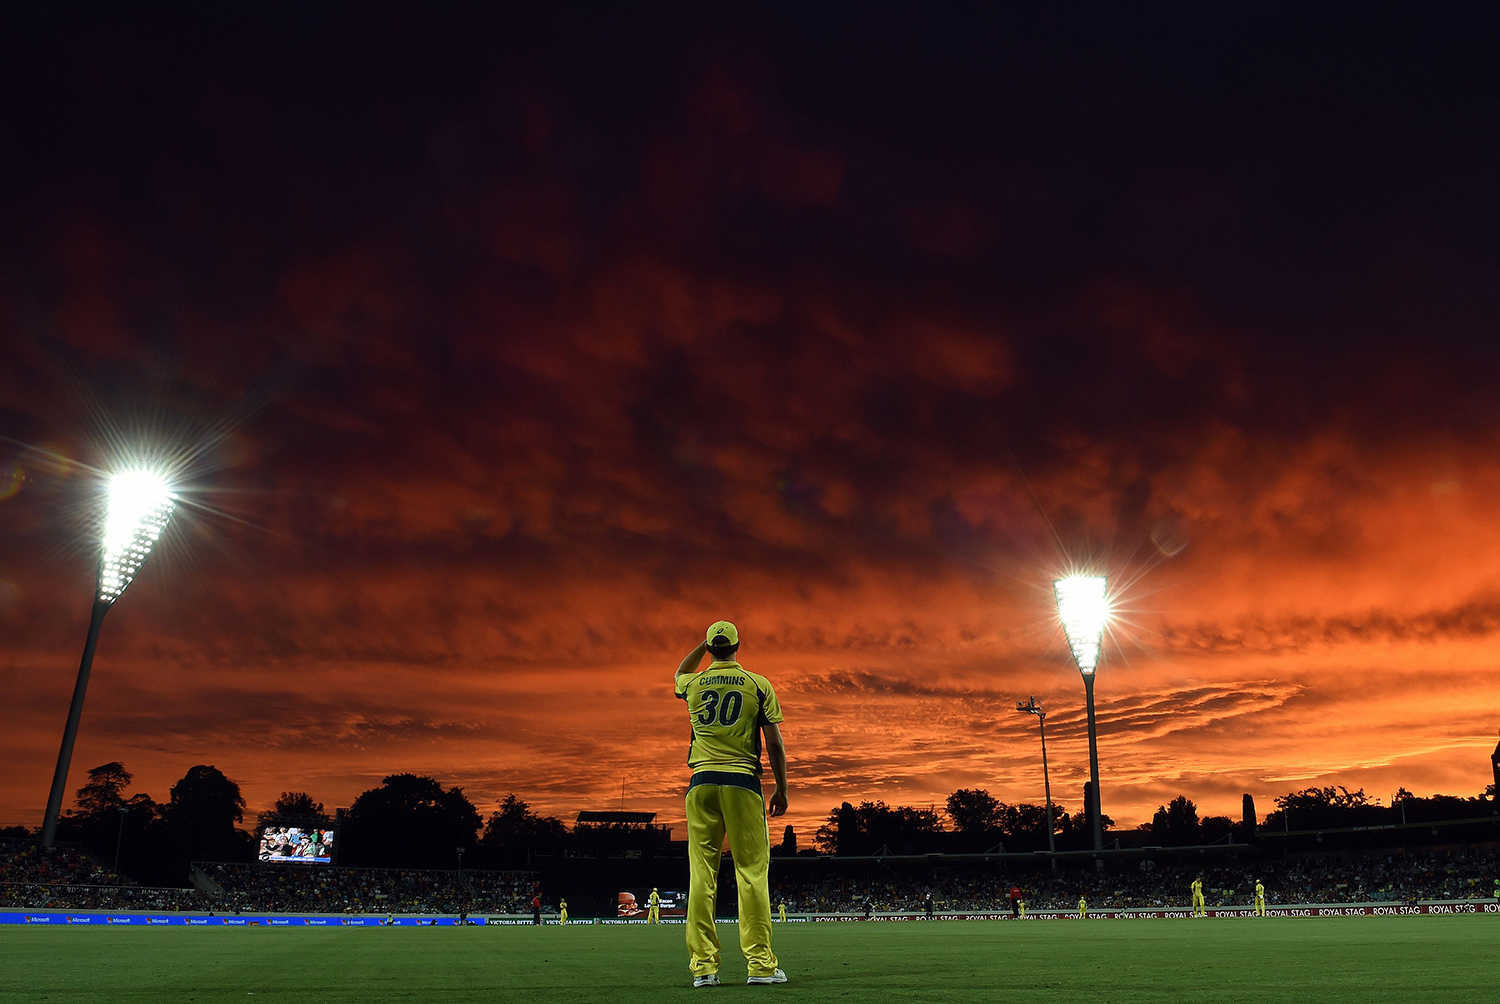 TOPSHOT - Australia's paceman Pat Cummins fields at the boundary line as the sun sets during the second game of the One Day International Cricket series between Australia and New Zealand in Canberra on December 6, 2016. / AFP PHOTO / Saeed KHAN / IMAGE RESTRICTED TO EDITORIAL USE - STRICTLY NO COMMERCIAL USE / TT / kod 444